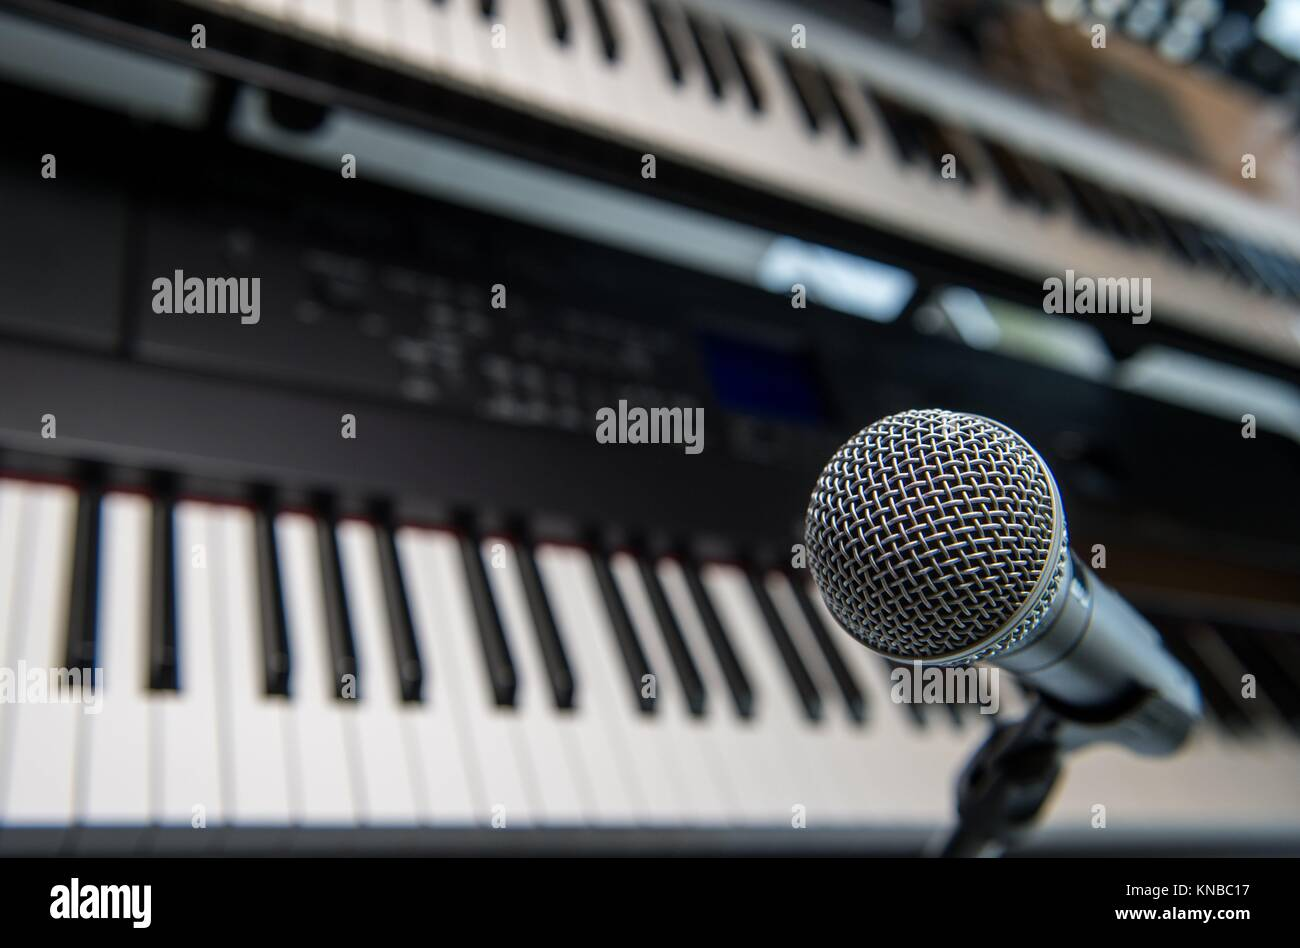 Studio room with synthesizer and microphone equipment, France. - Stock Image